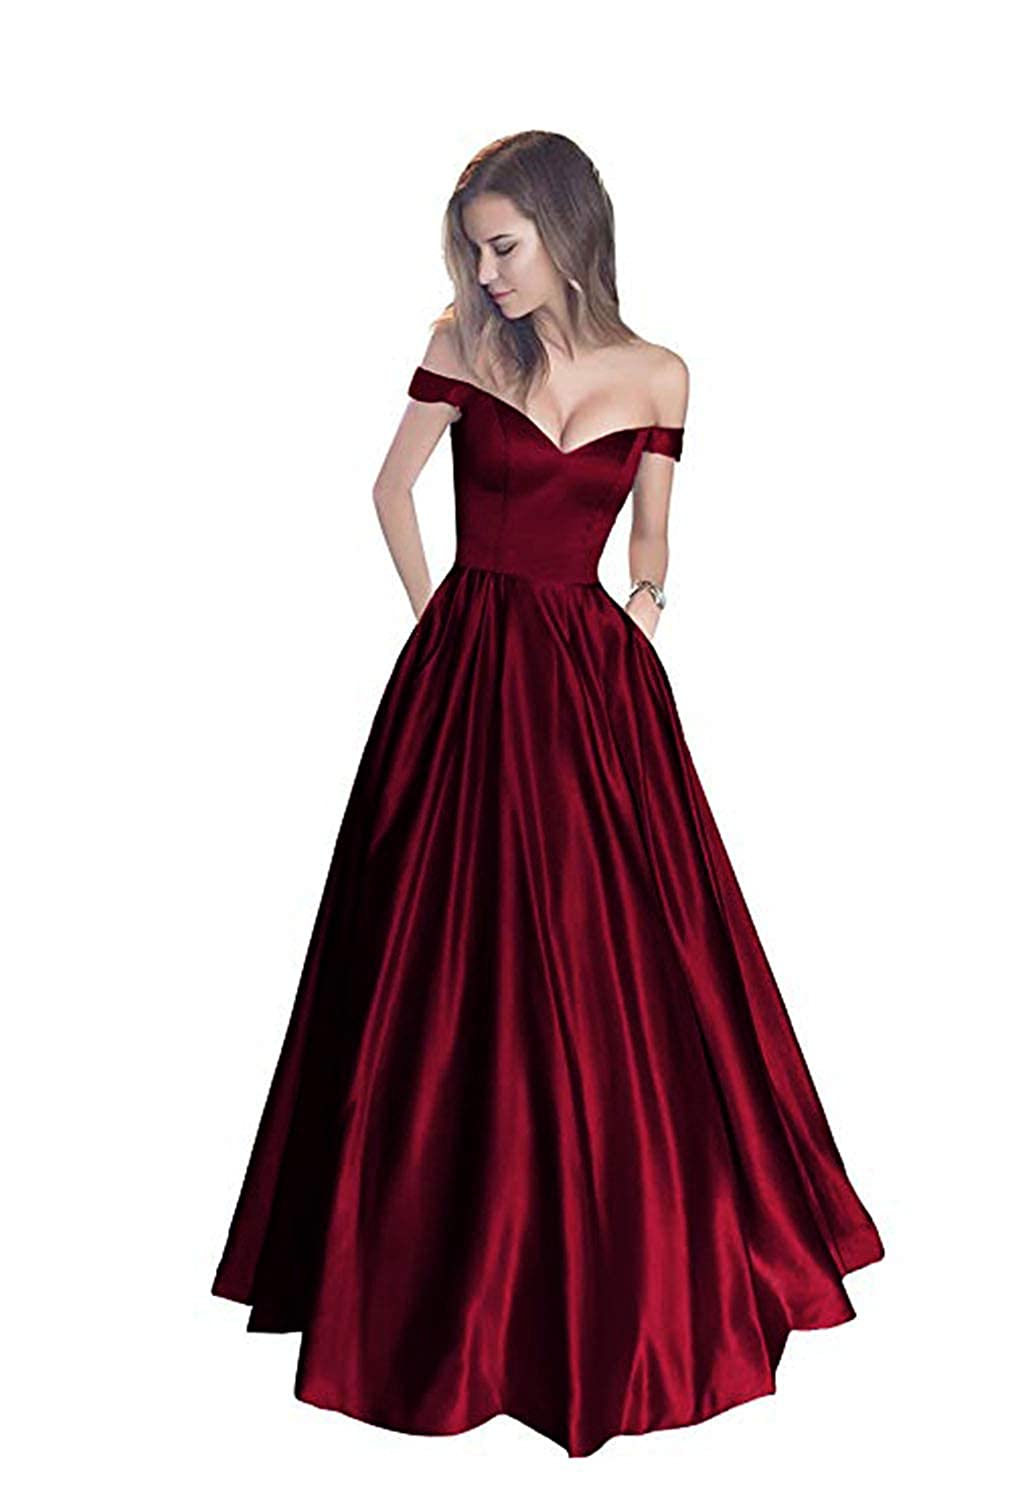 Burgundy without Belt FJMM Womens Off The Shoulder Beaded ALine Prom Dress for Party